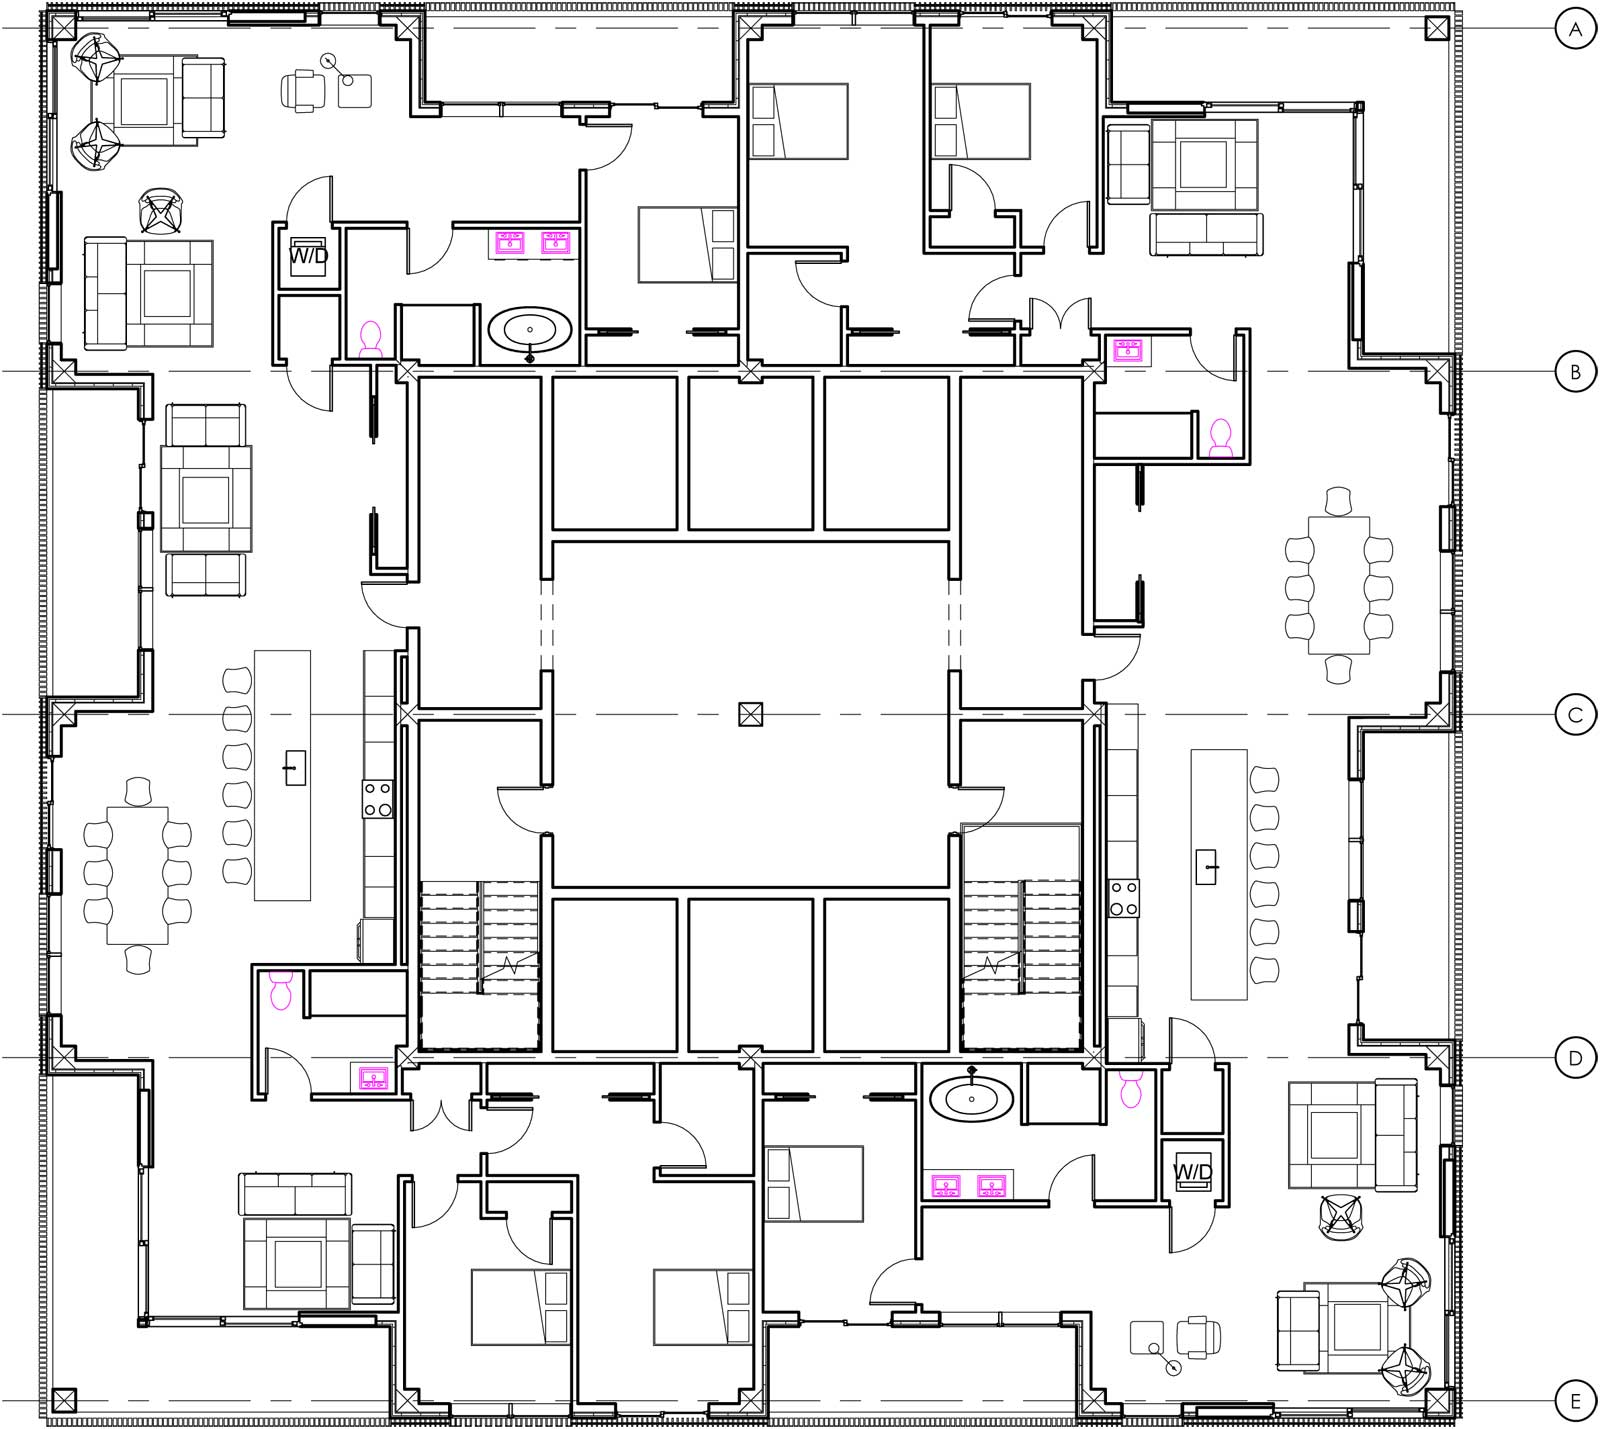 NYC-Timber-Residential-Skyscraper-3-Bedroom-Unit-Floor-Plan-Type-B.jpg